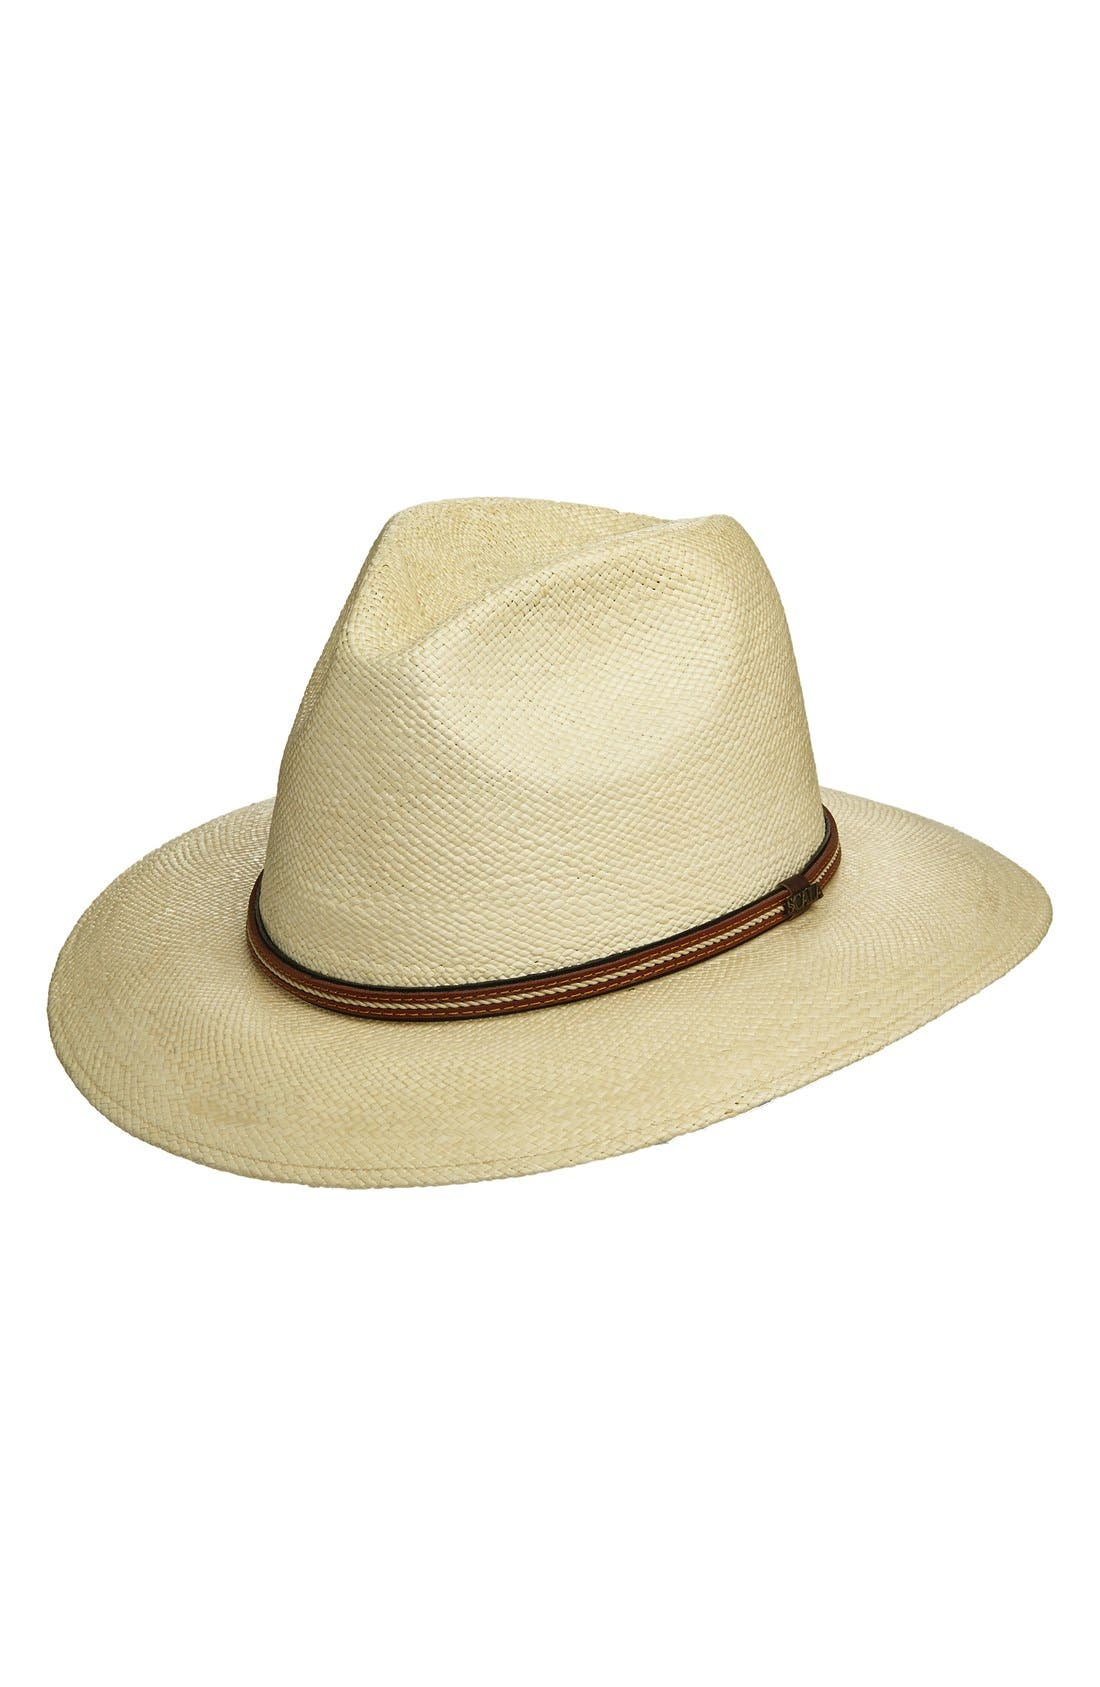 SCALA Straw Safari Hat